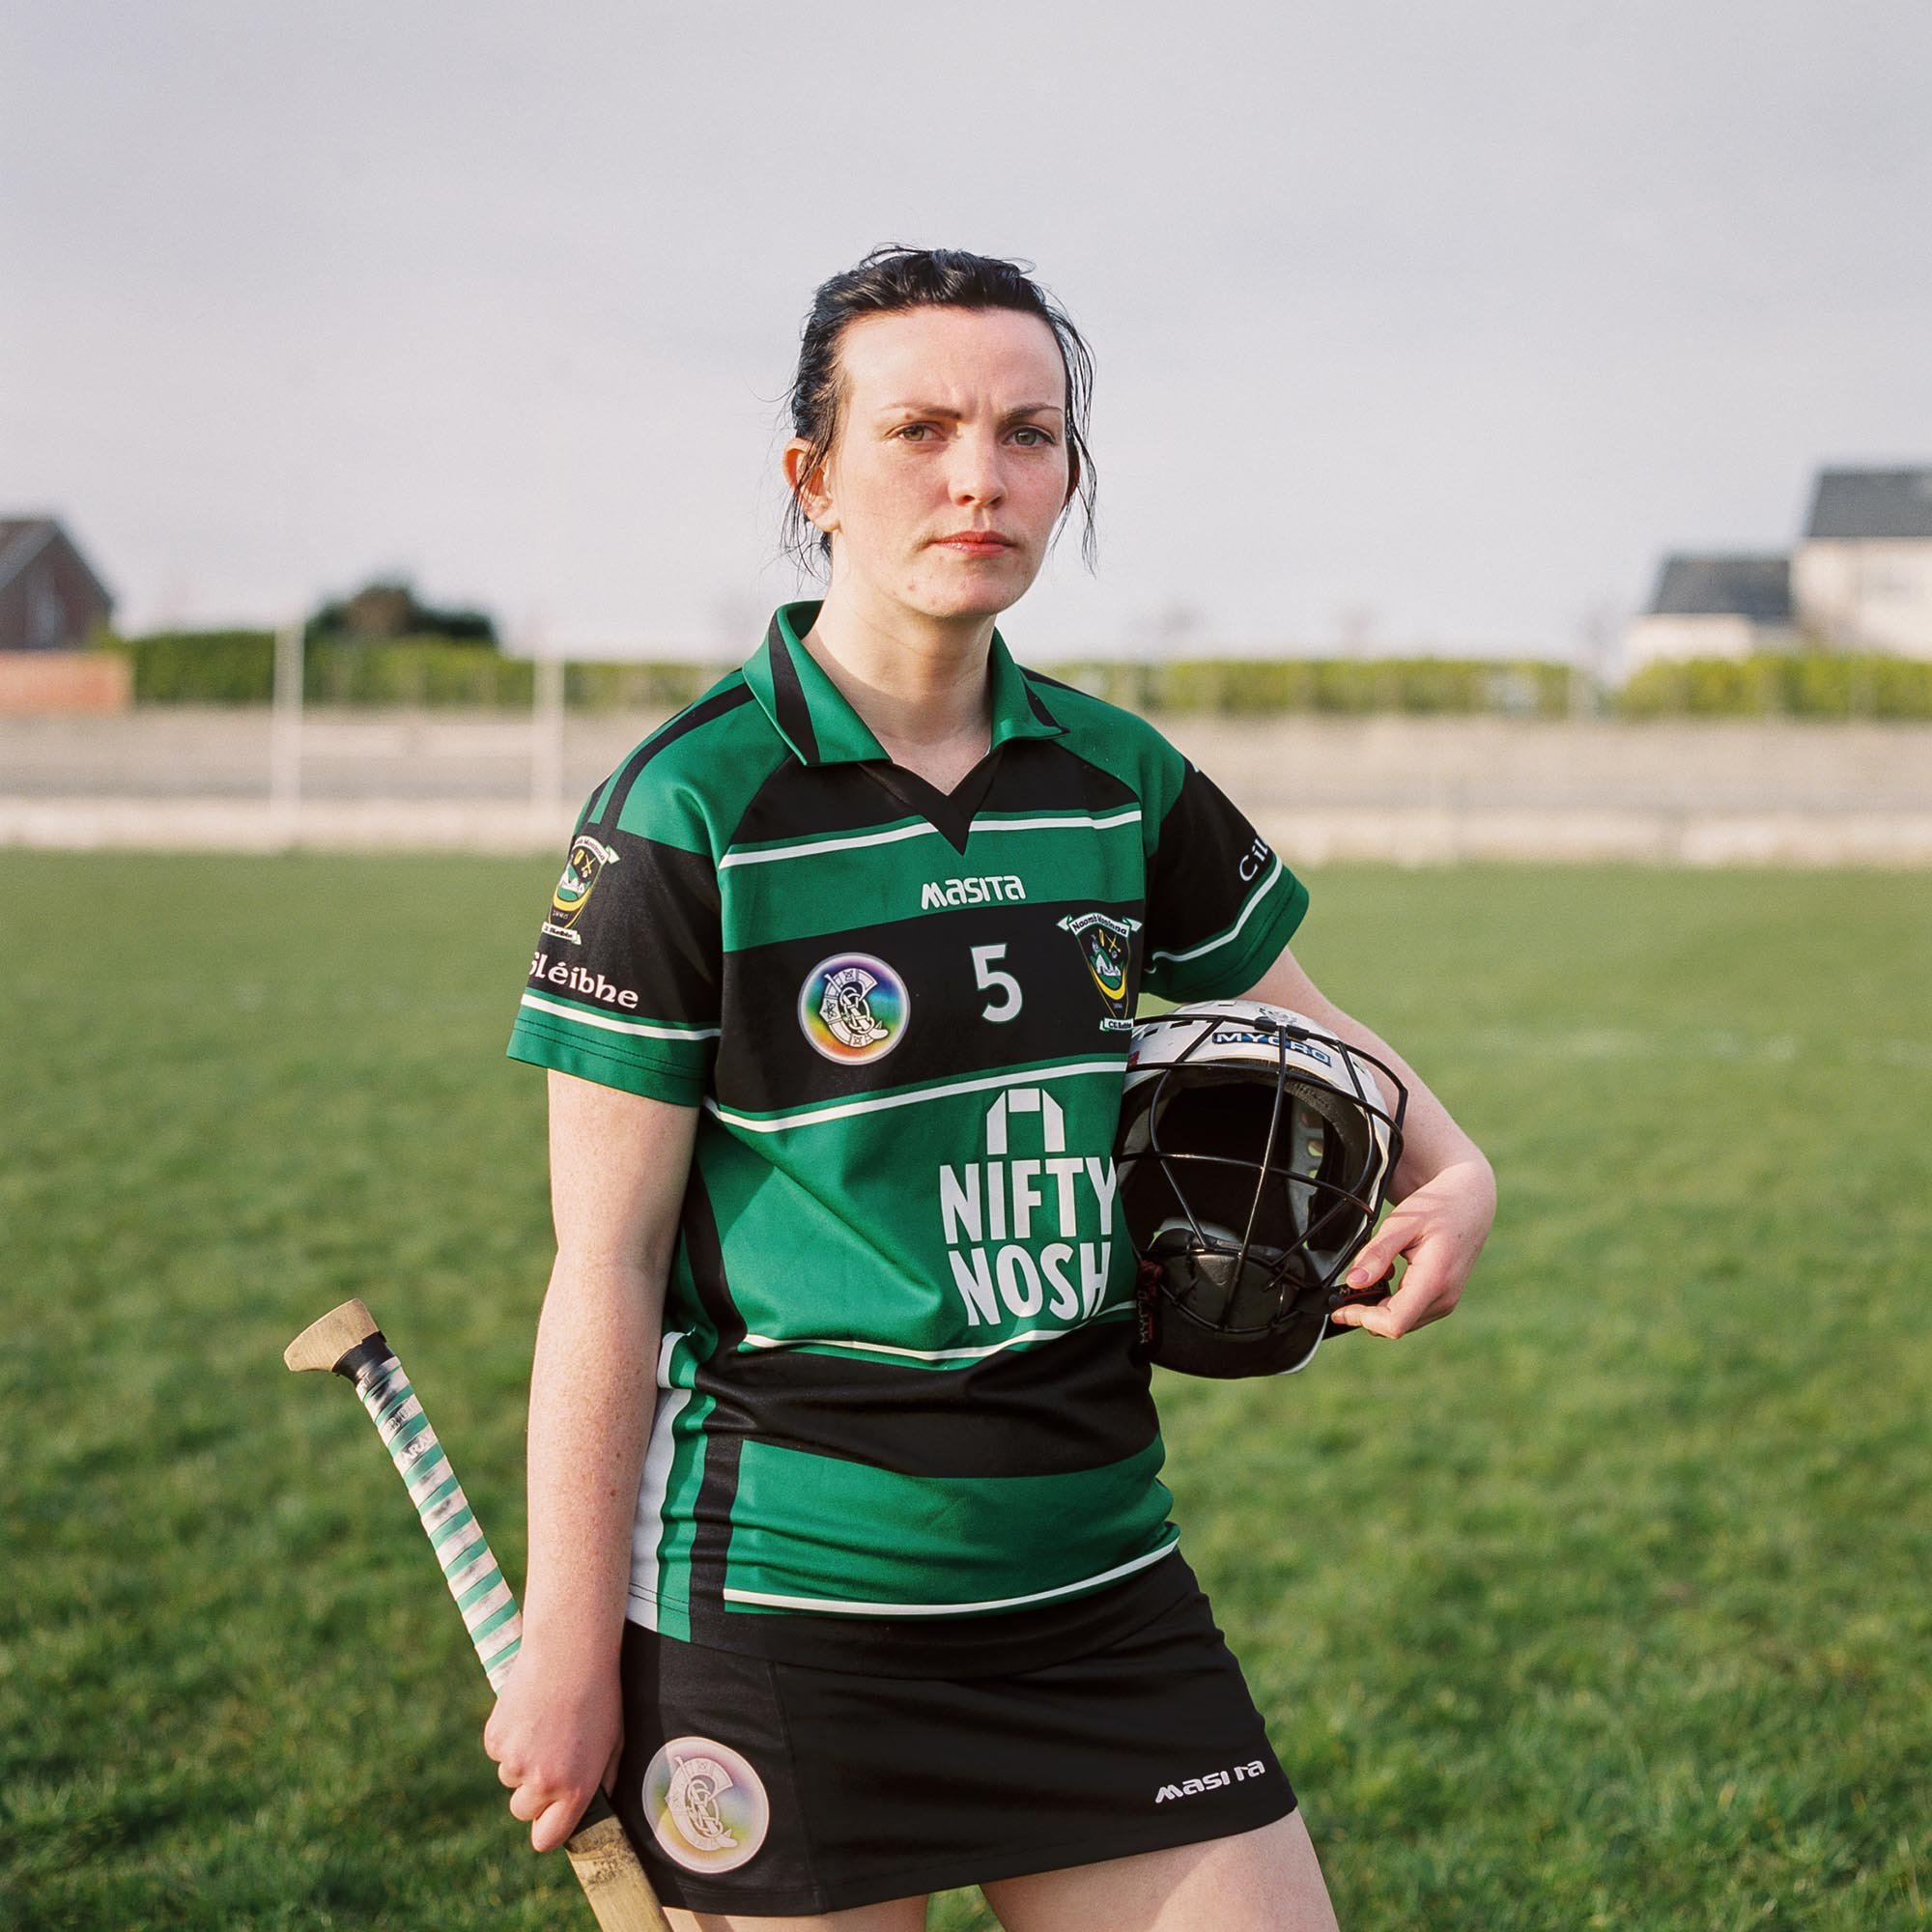 Bronagh Byrne at Killeavy GAA for The New York Times